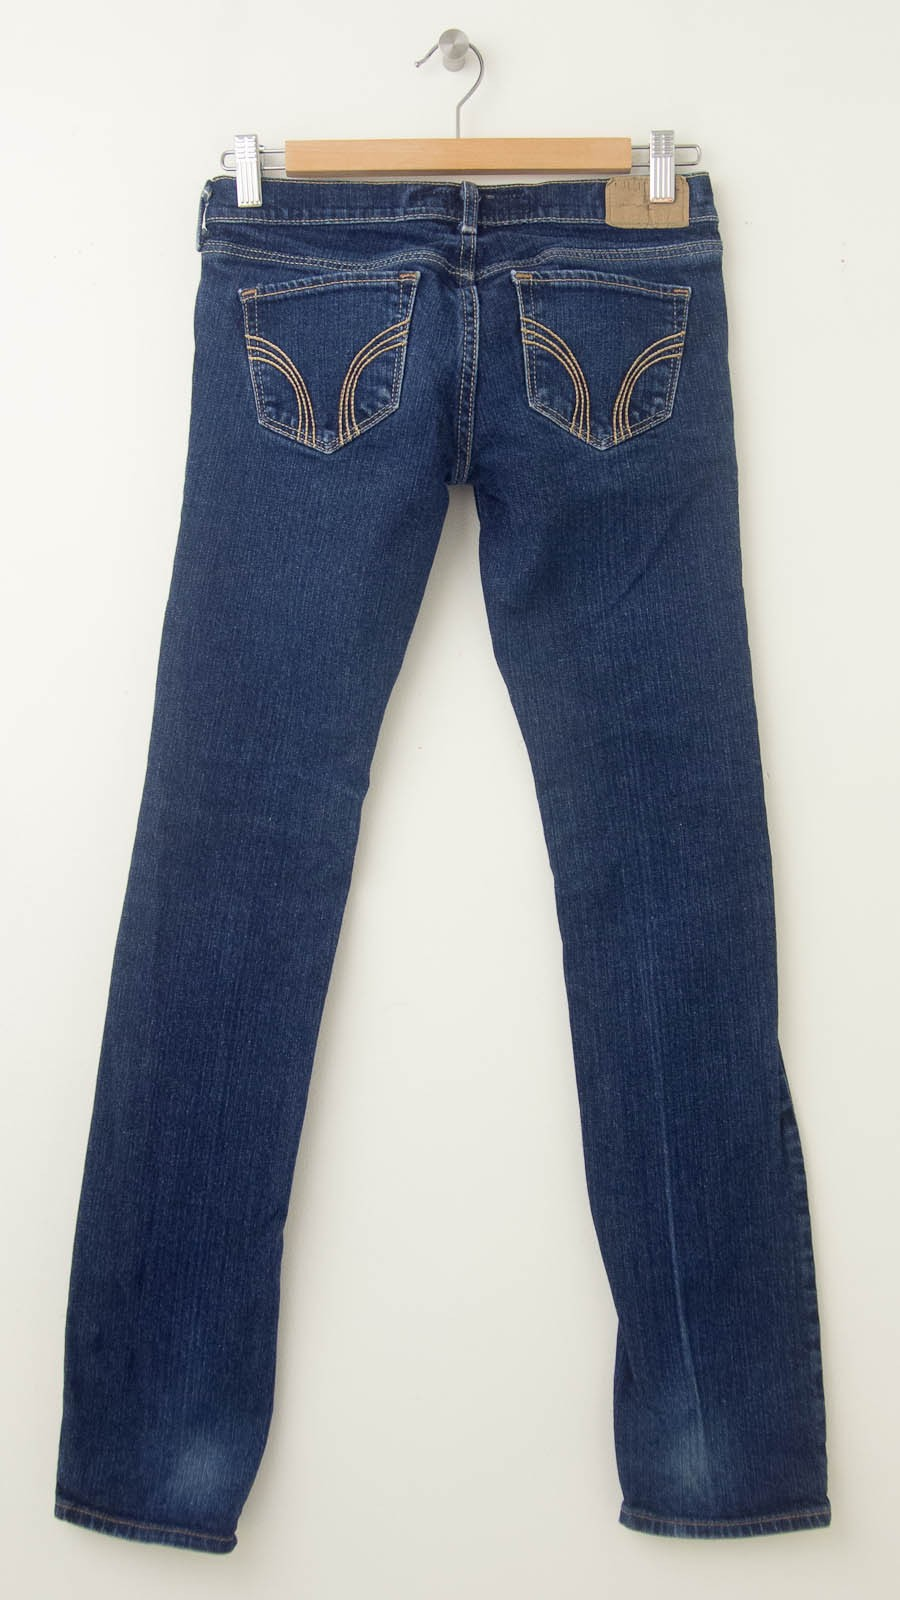 hollister jeans for girls - photo #33